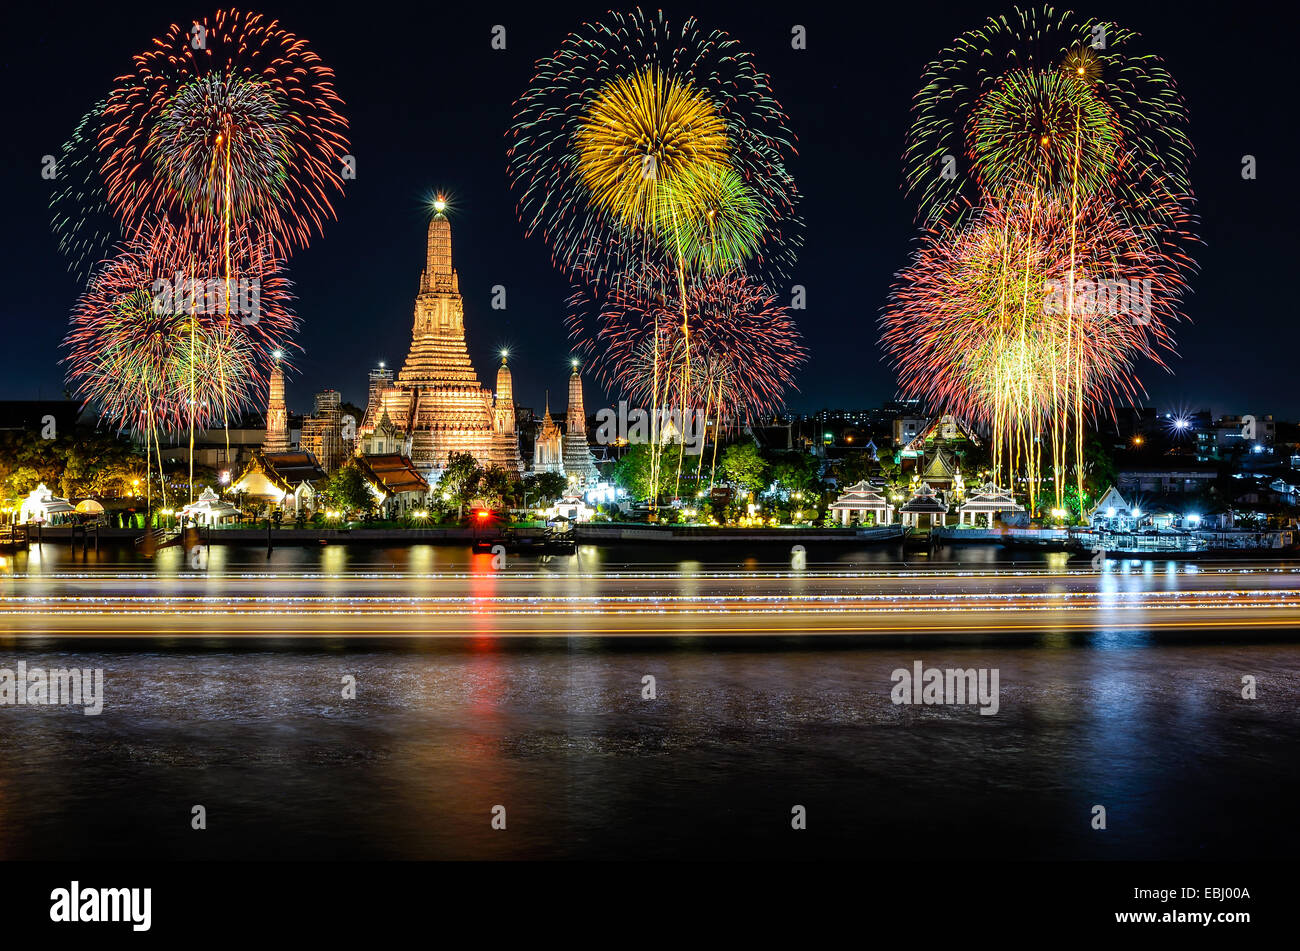 Wat arun under new year celebration time, Thailand - Stock Image